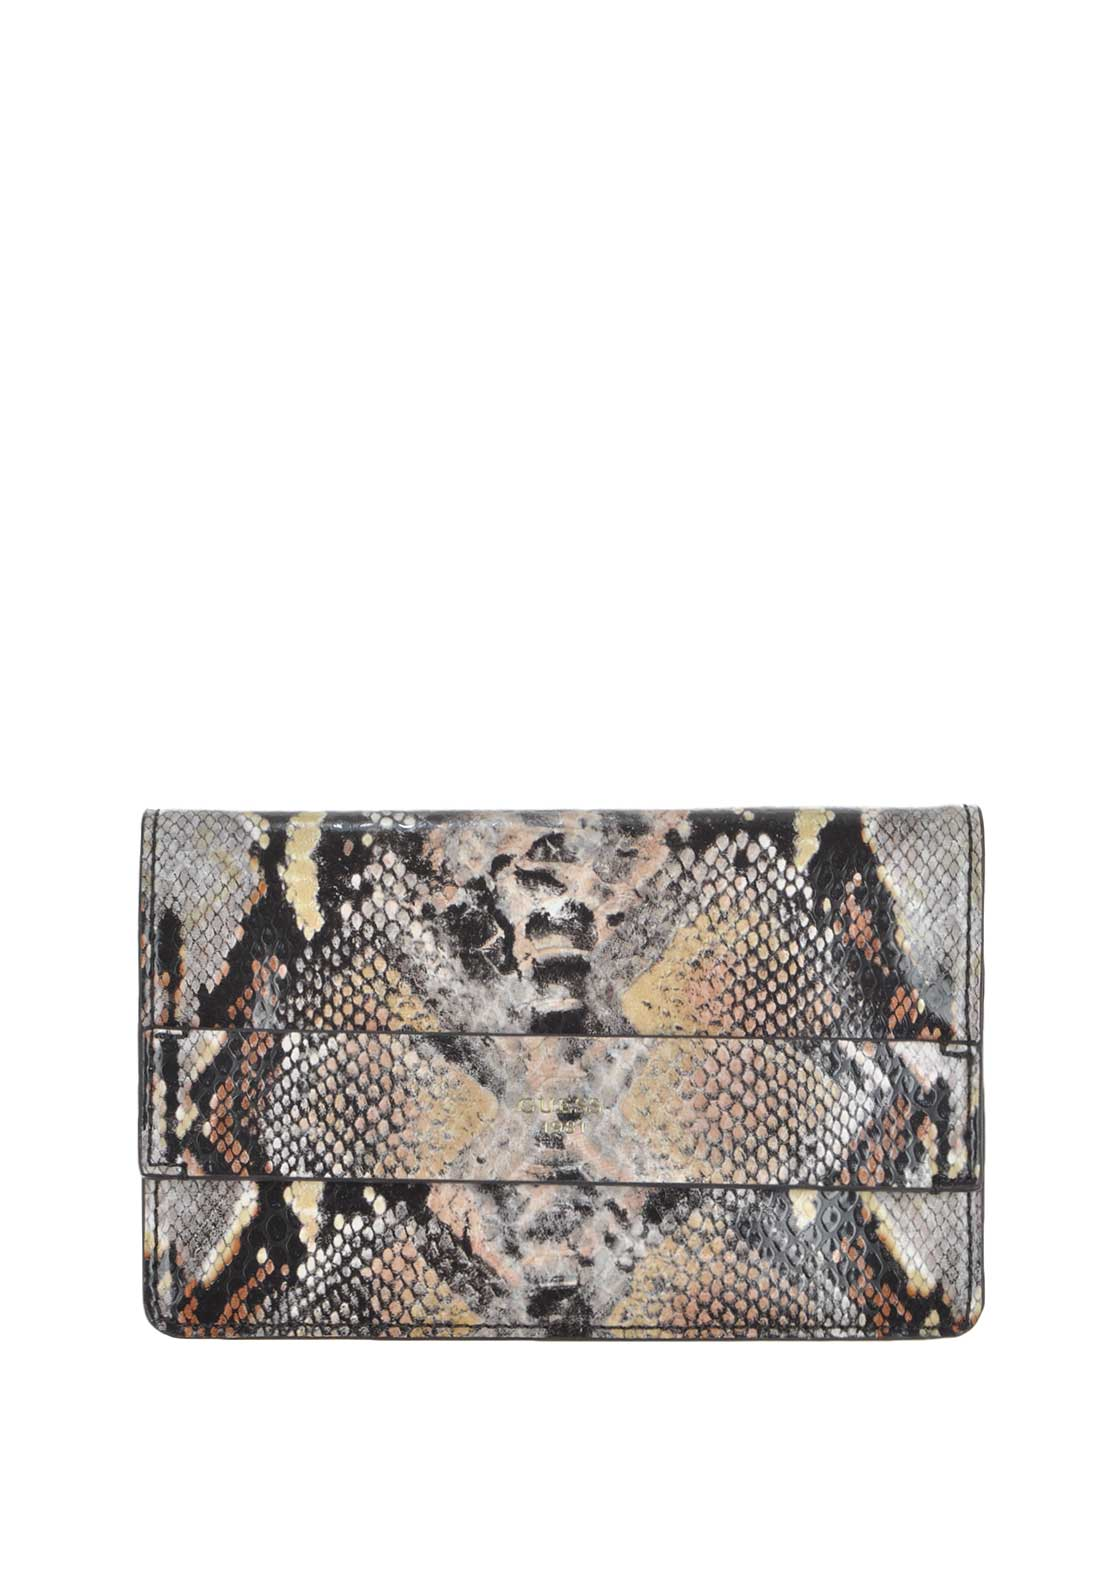 Guess Womens Hailey Faux Leather Petite Crossbody Bag, Python